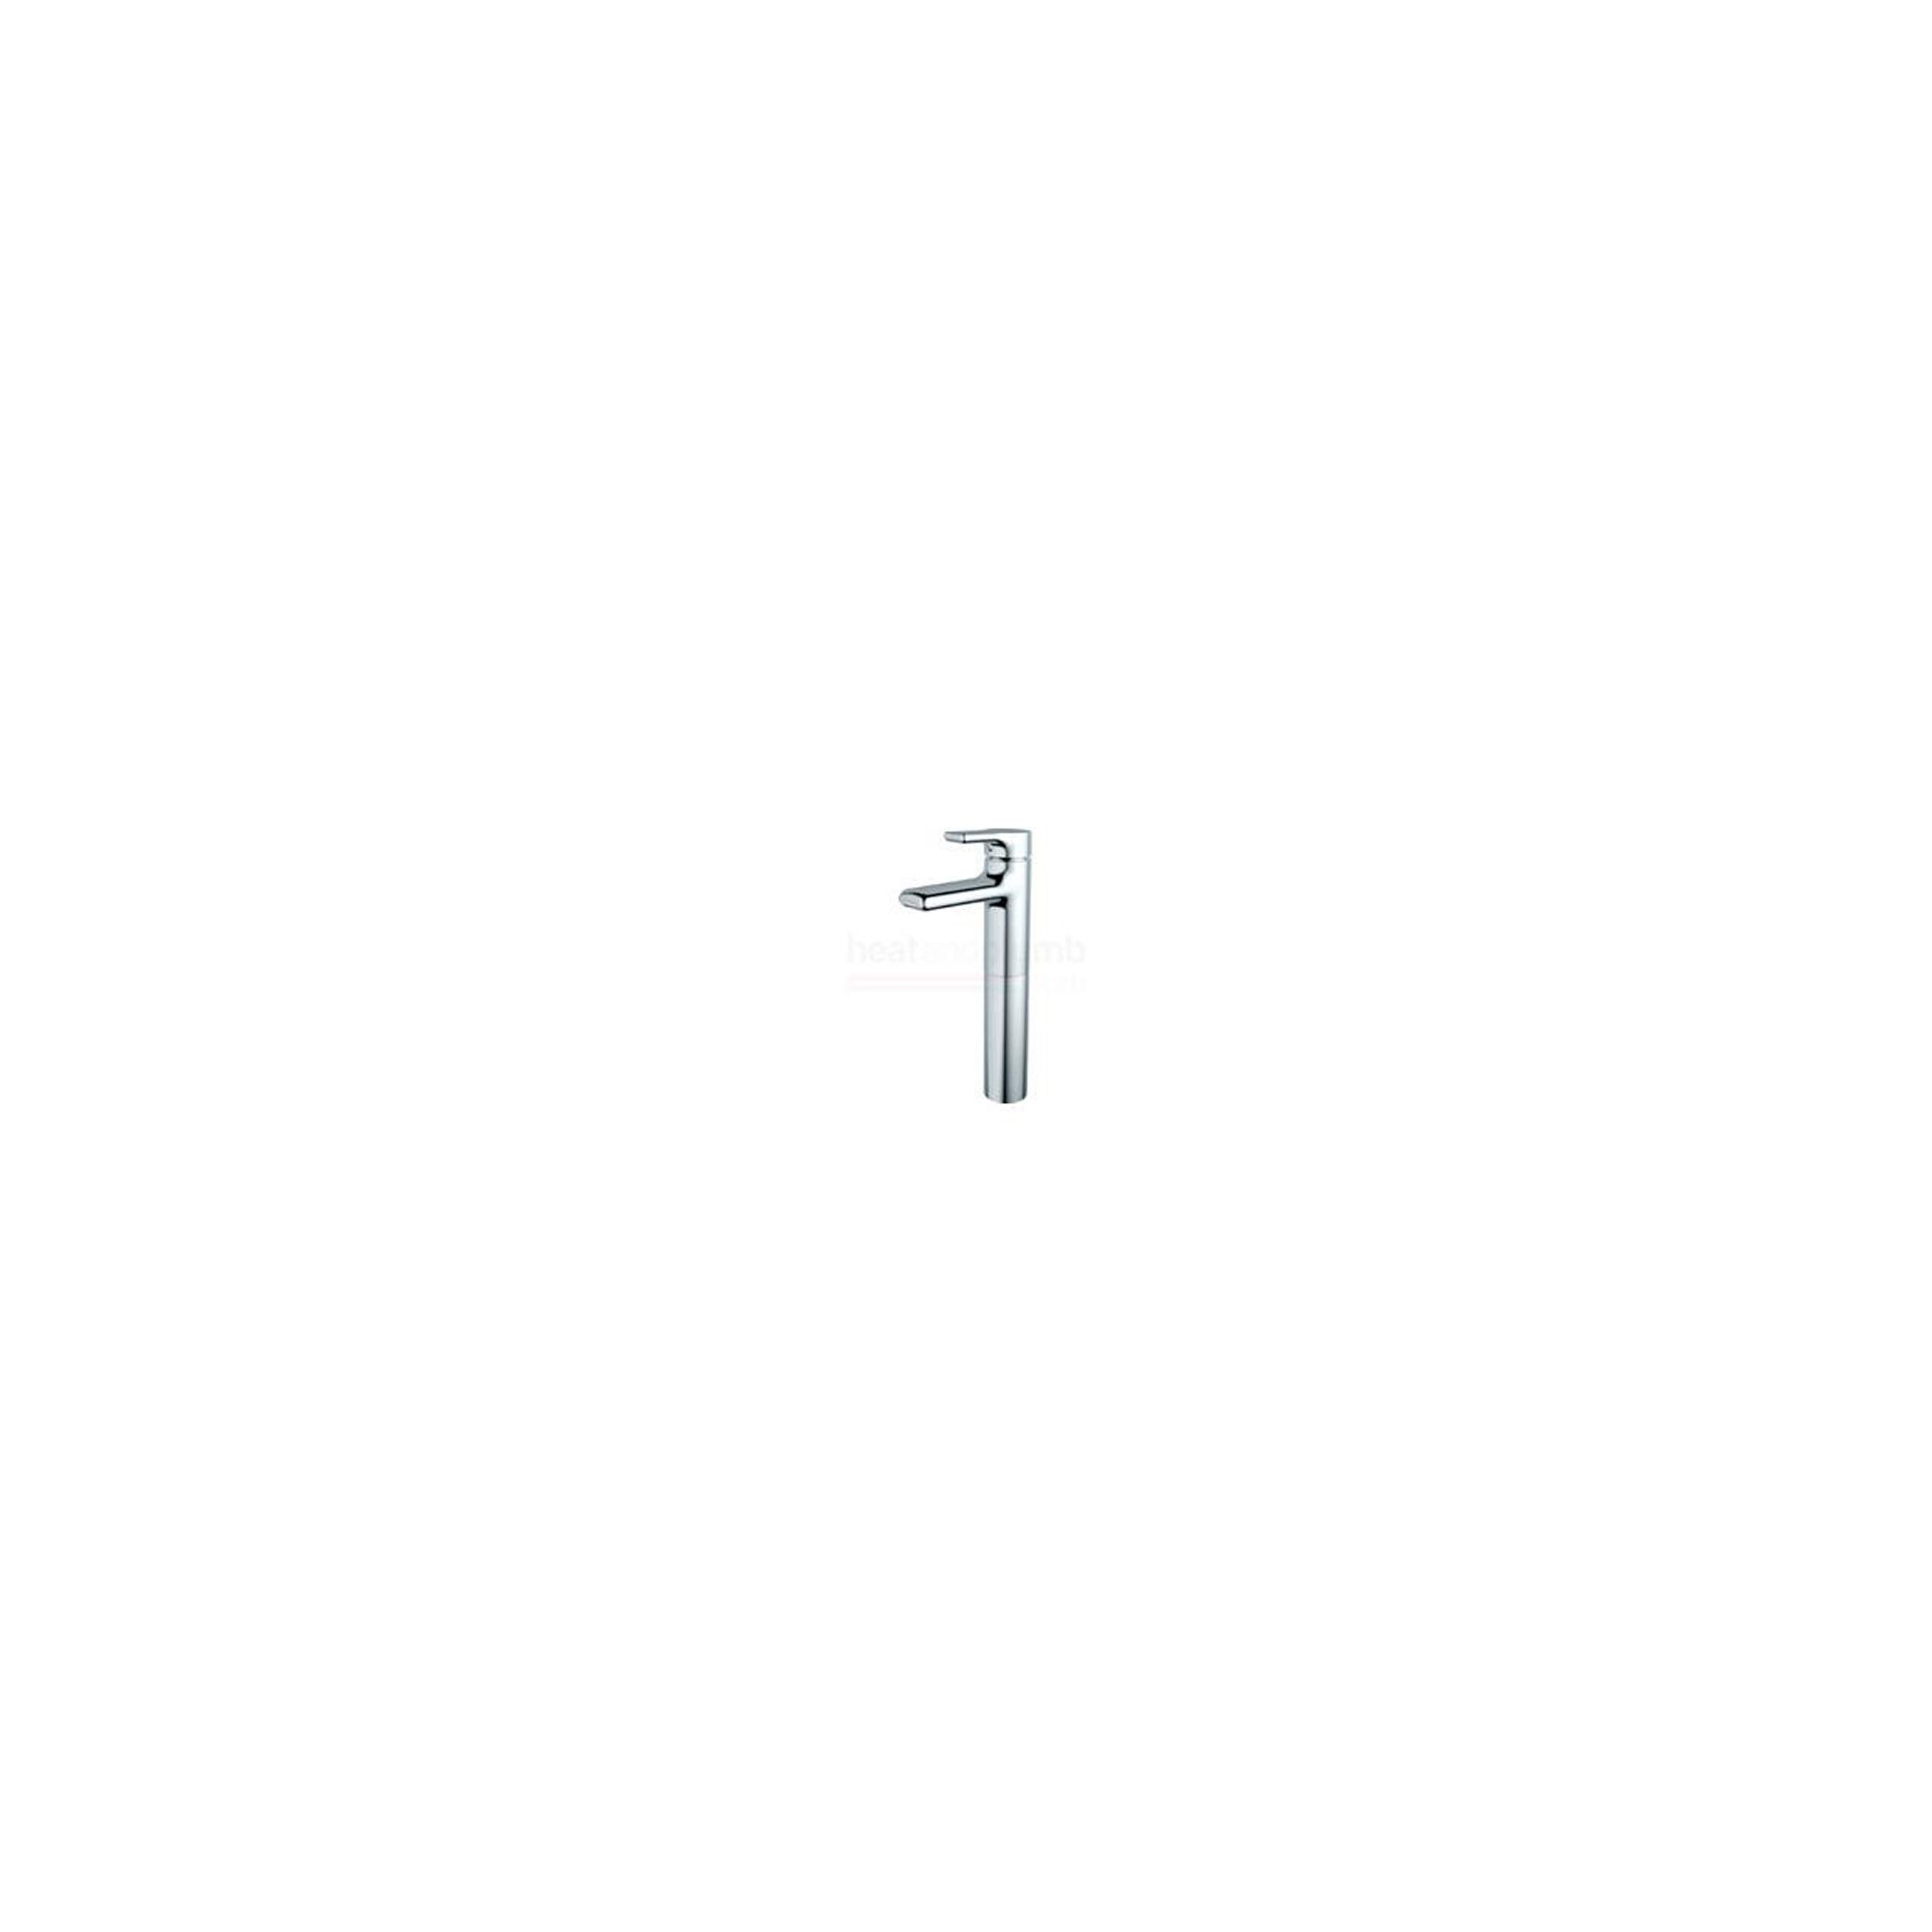 Ideal Standard Attitude Waterfall Single Lever Vessel Mono Basin Mixer Tap Chrome excluding Waste at Tesco Direct